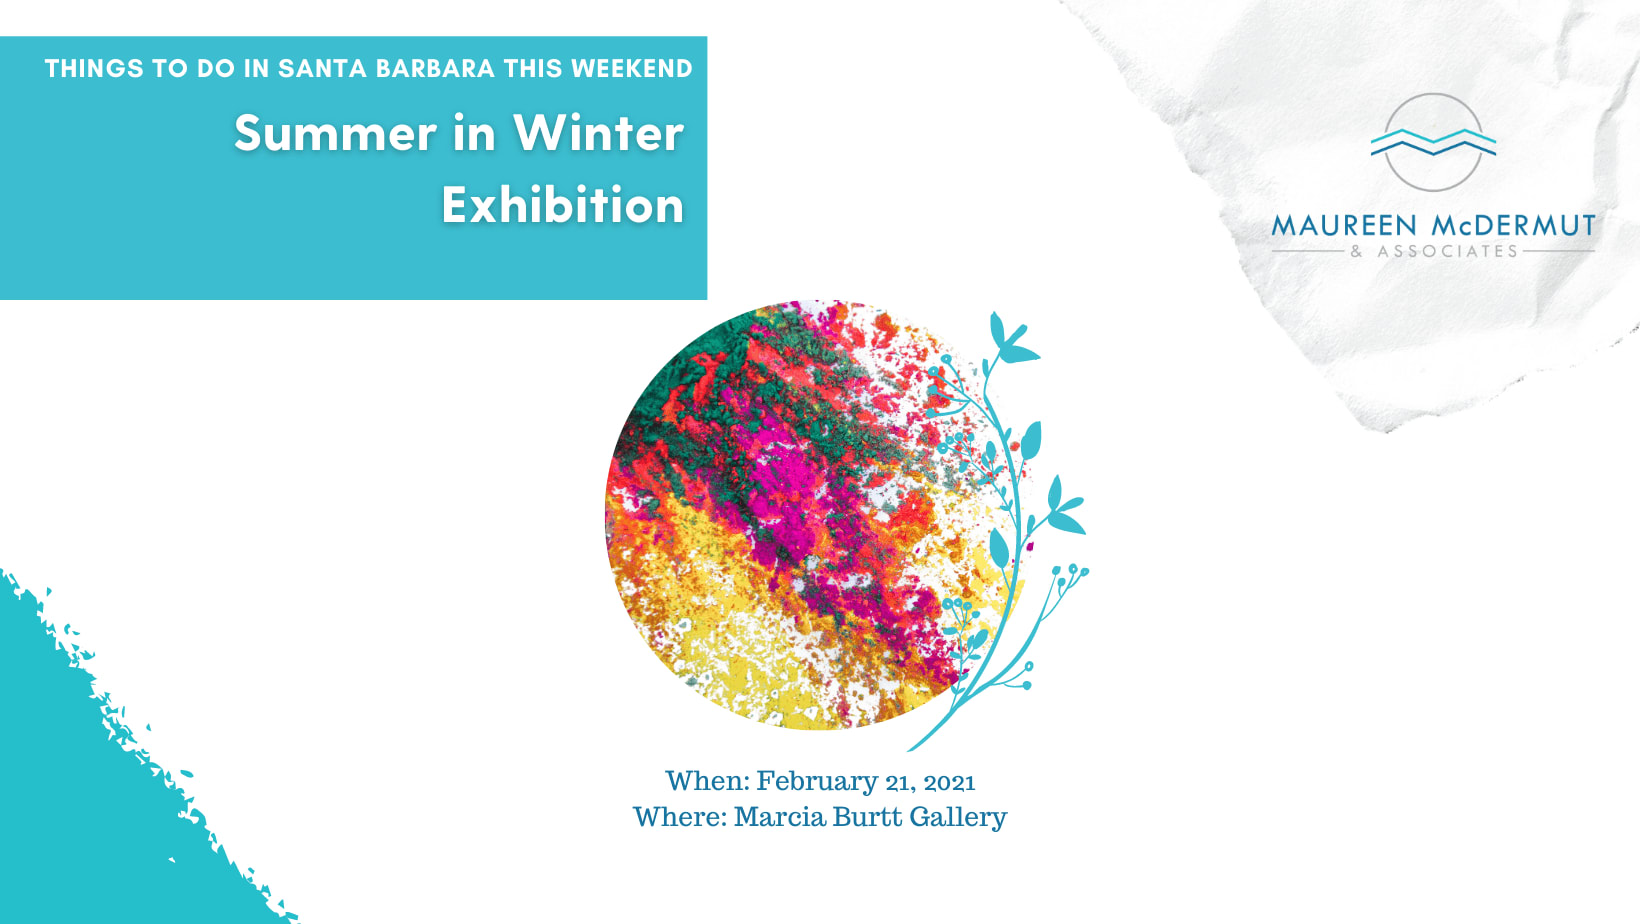 Summer in Winter Exhibition image